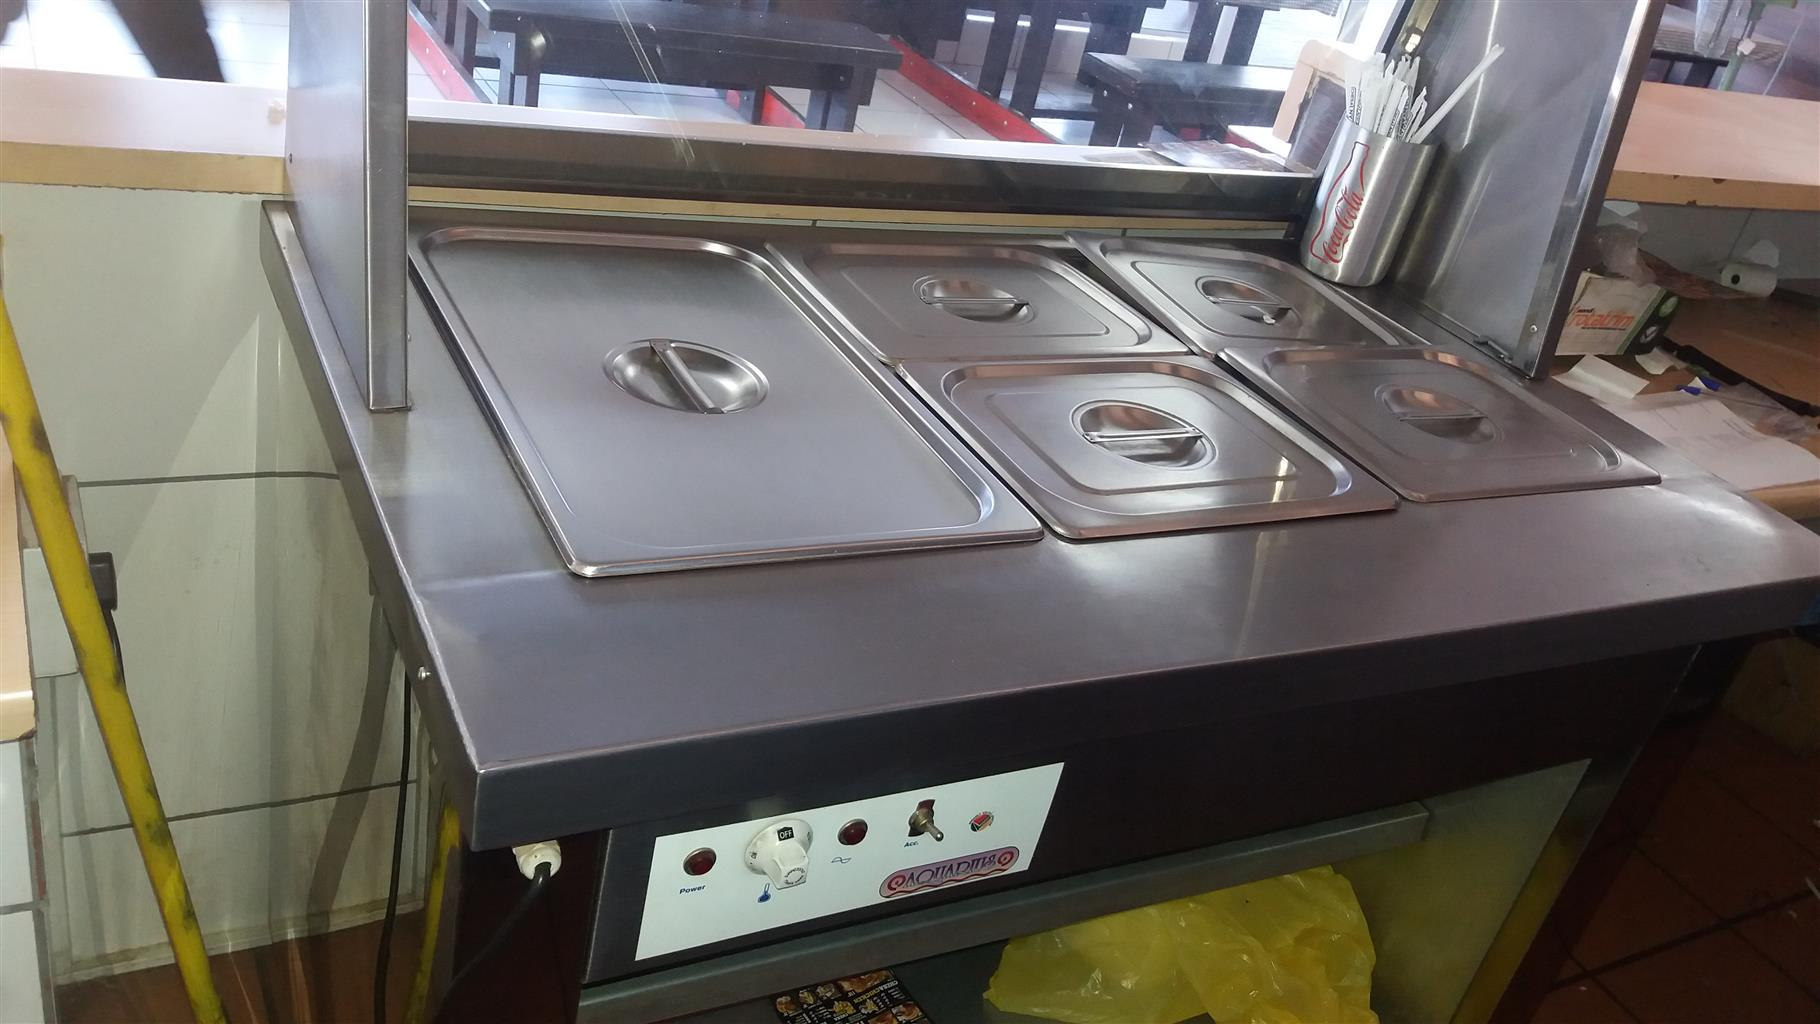 Negotiable: restaurant catering equipment for sale, urgent. Joint venture?